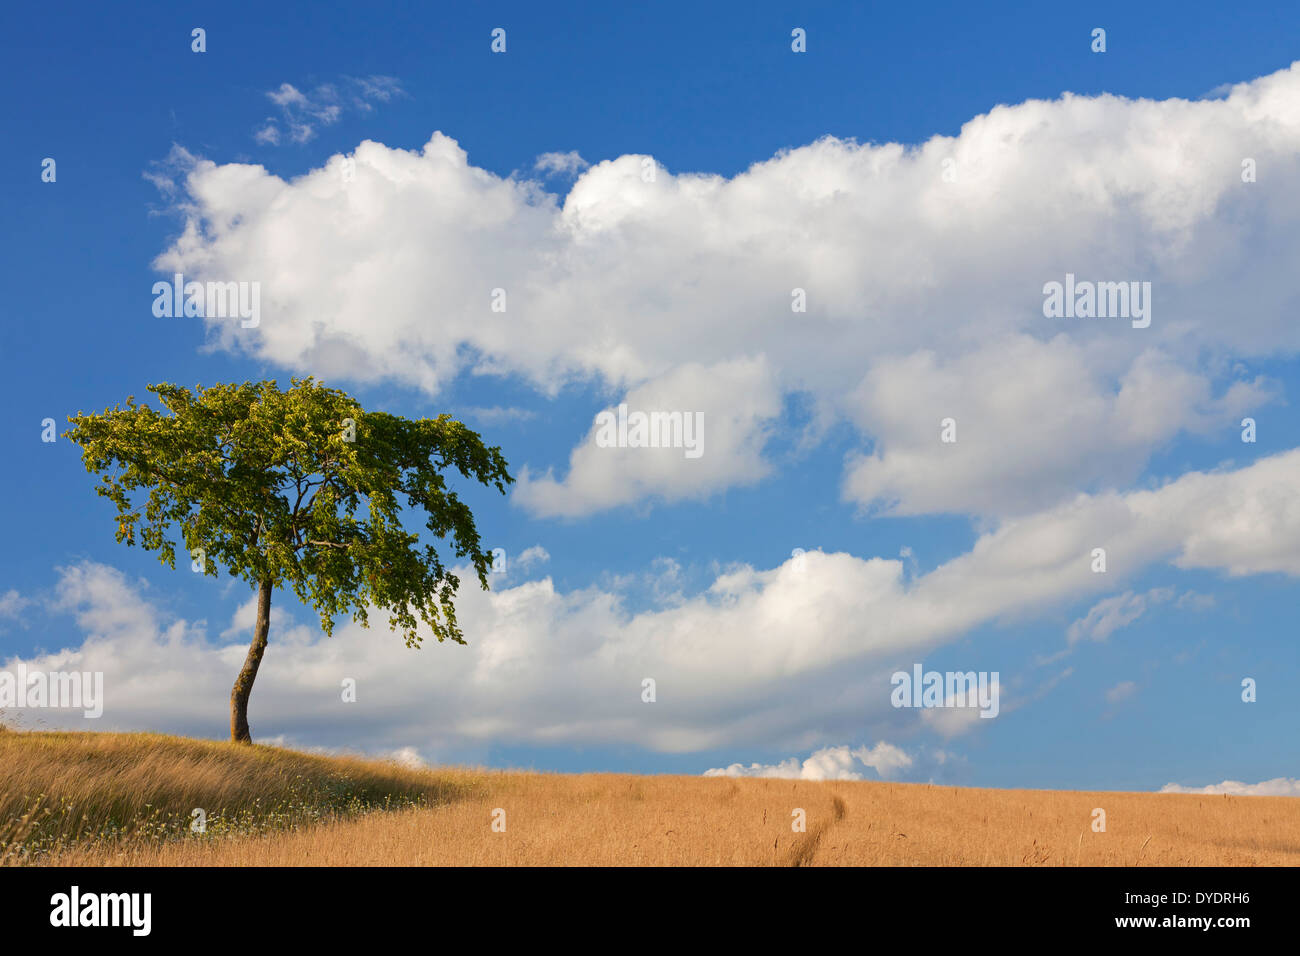 Solitary lime tree / linden in wheat field in the countryside in summer - Stock Image